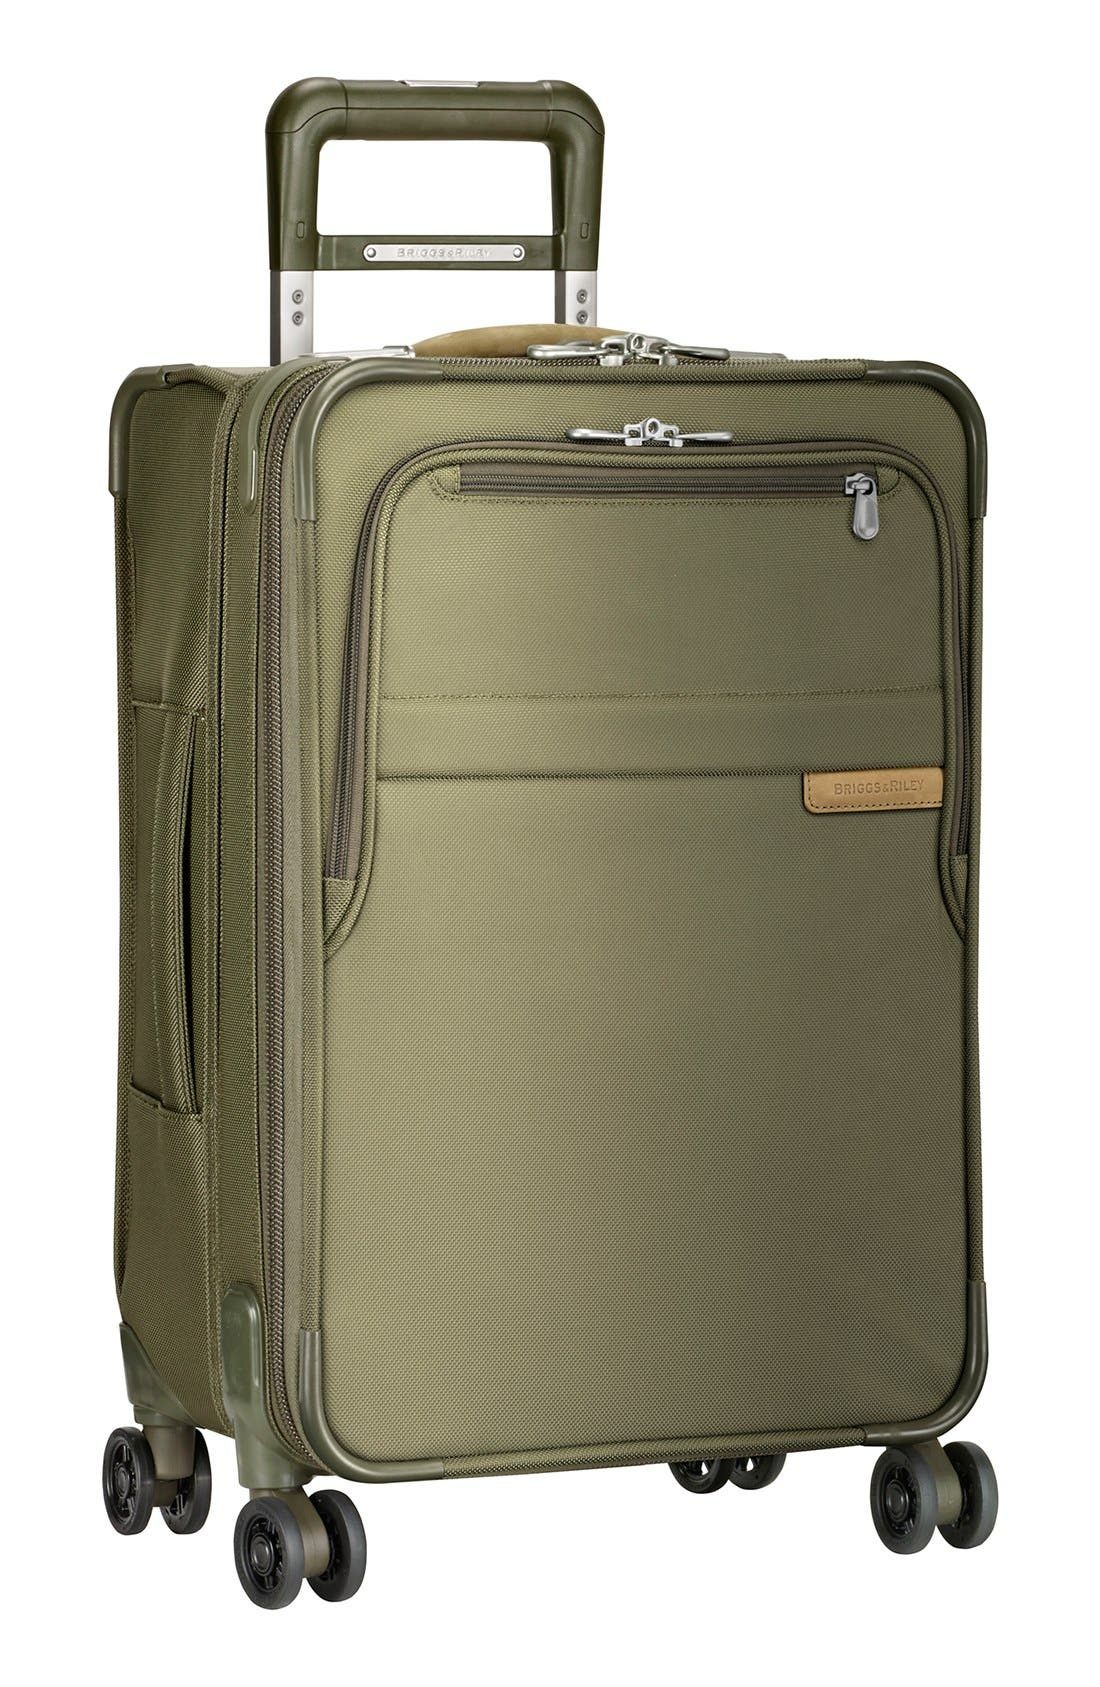 BRIGGS & RILEY 'Baseline' Domestic Expandable Rolling Carry-On